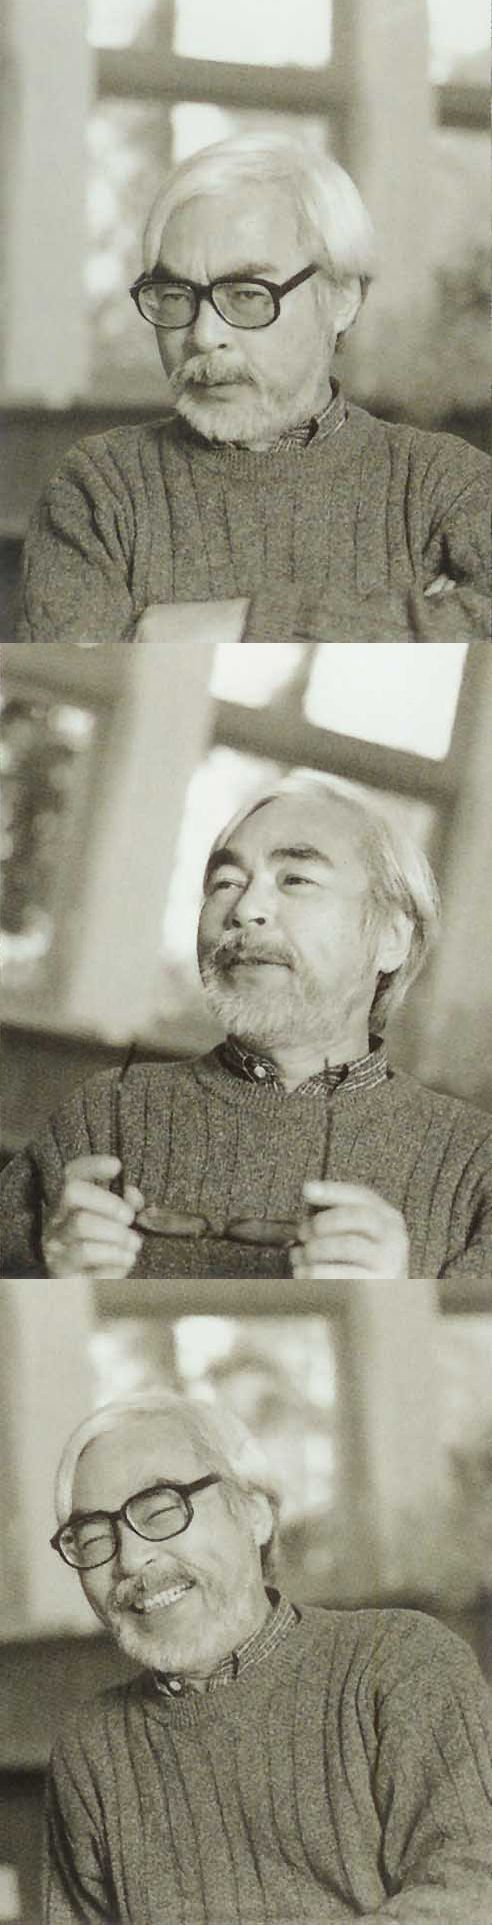 """Hayao Miyazaki ~ One of my heroes. Mr. Miyazaki, a world renowned Japanese animator known for, among others, """"Nausicaa - Warriors Of The Wind"""", """"My Neighbour Totoro"""", """"Castle In The Sky"""", """"Spirited Away"""", """"Kiki's Delivery Service"""", """"Howl's Moving Castle"""", """"Princess Mononoke"""" and """"Ponyo""""."""